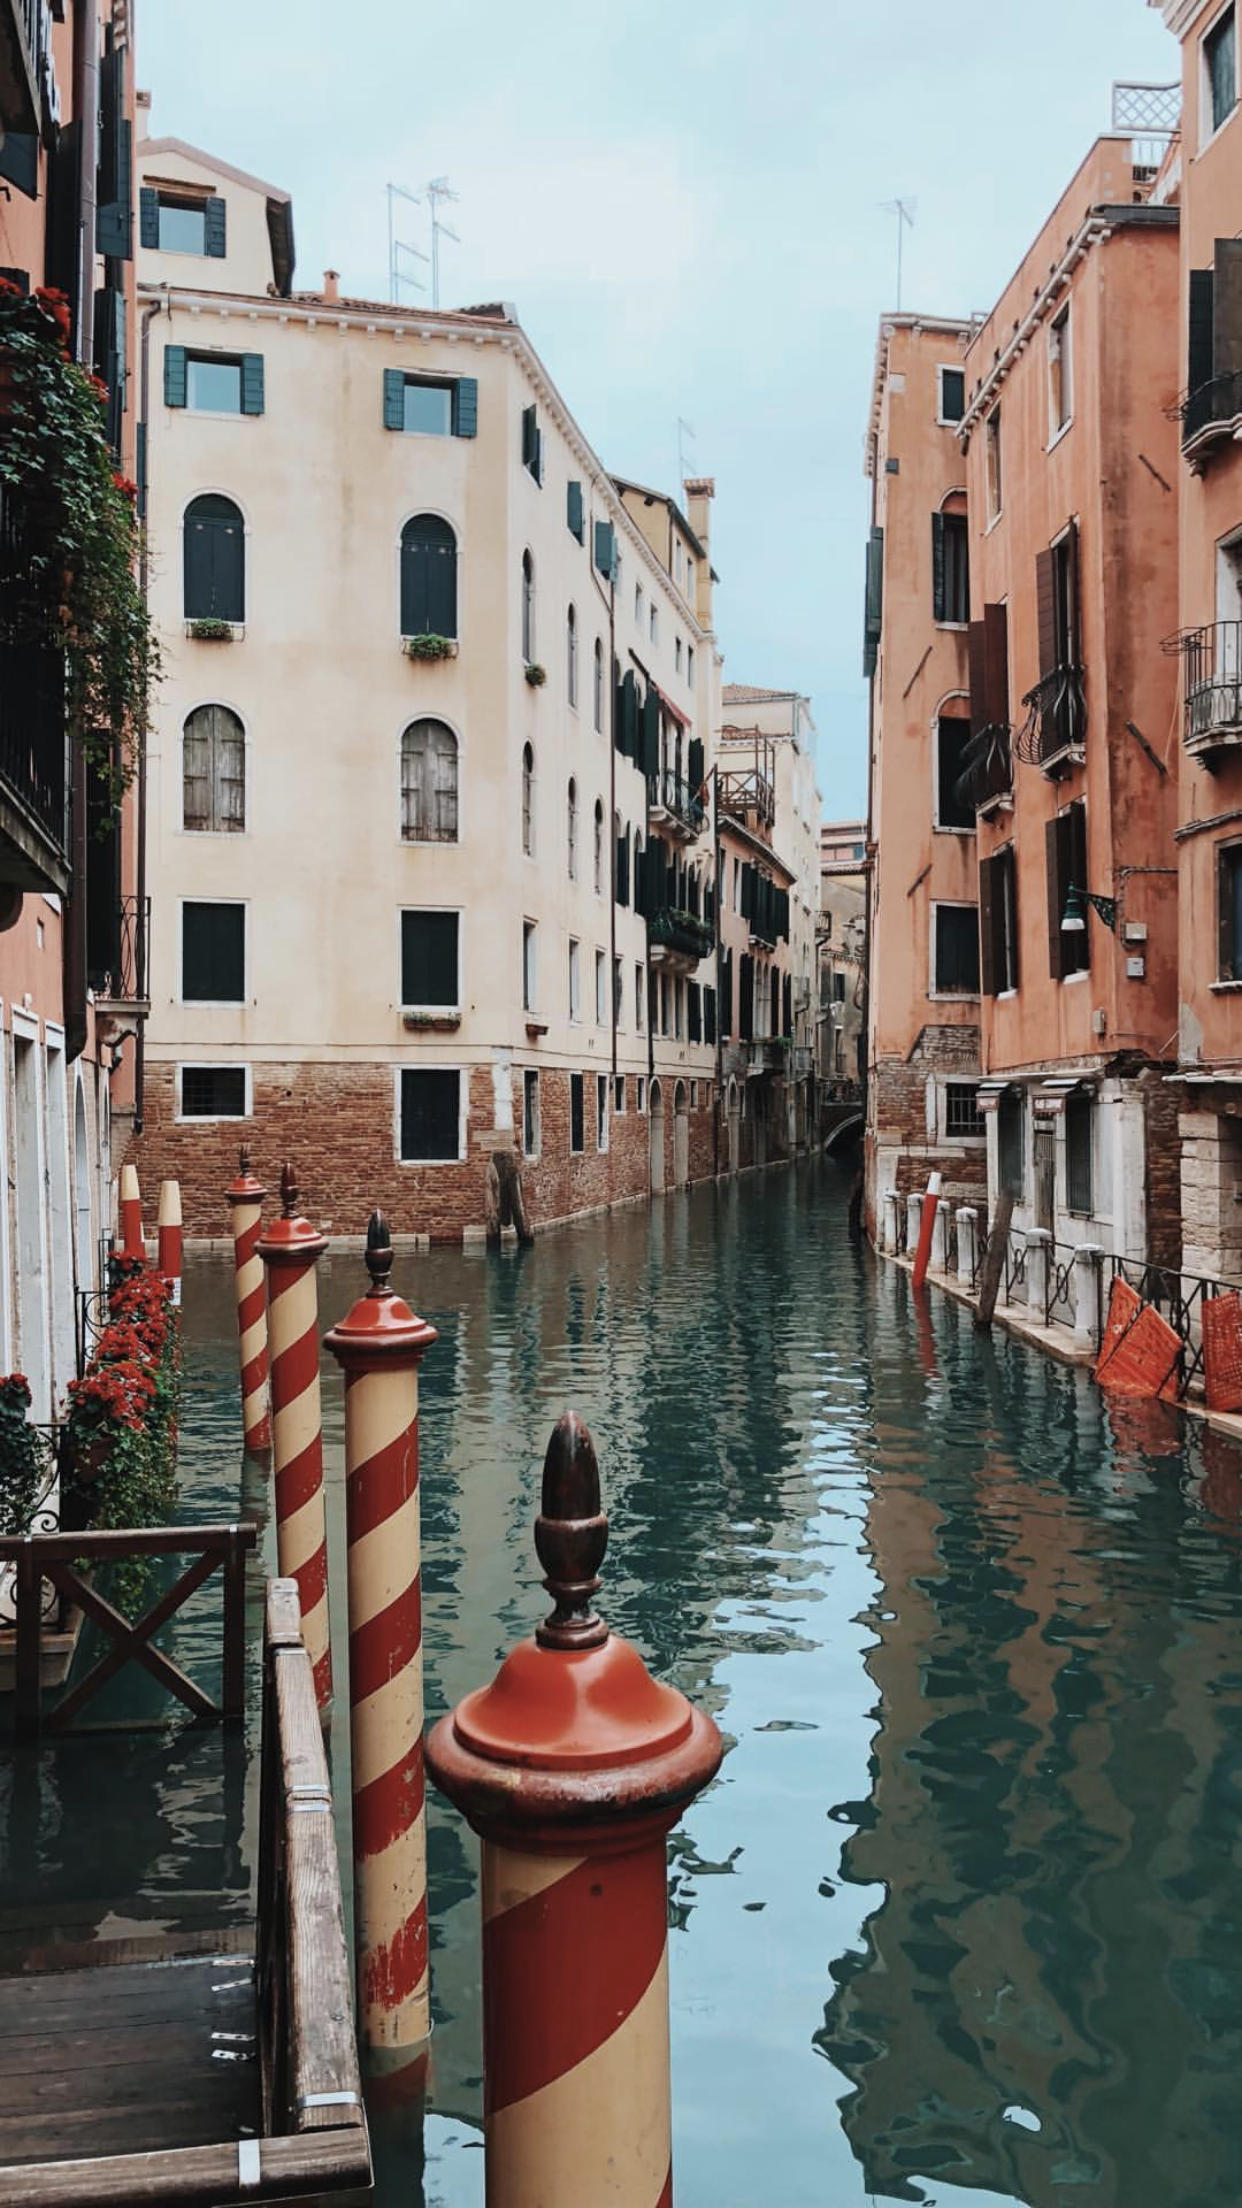 venice italy taken by ellie thumann (With images